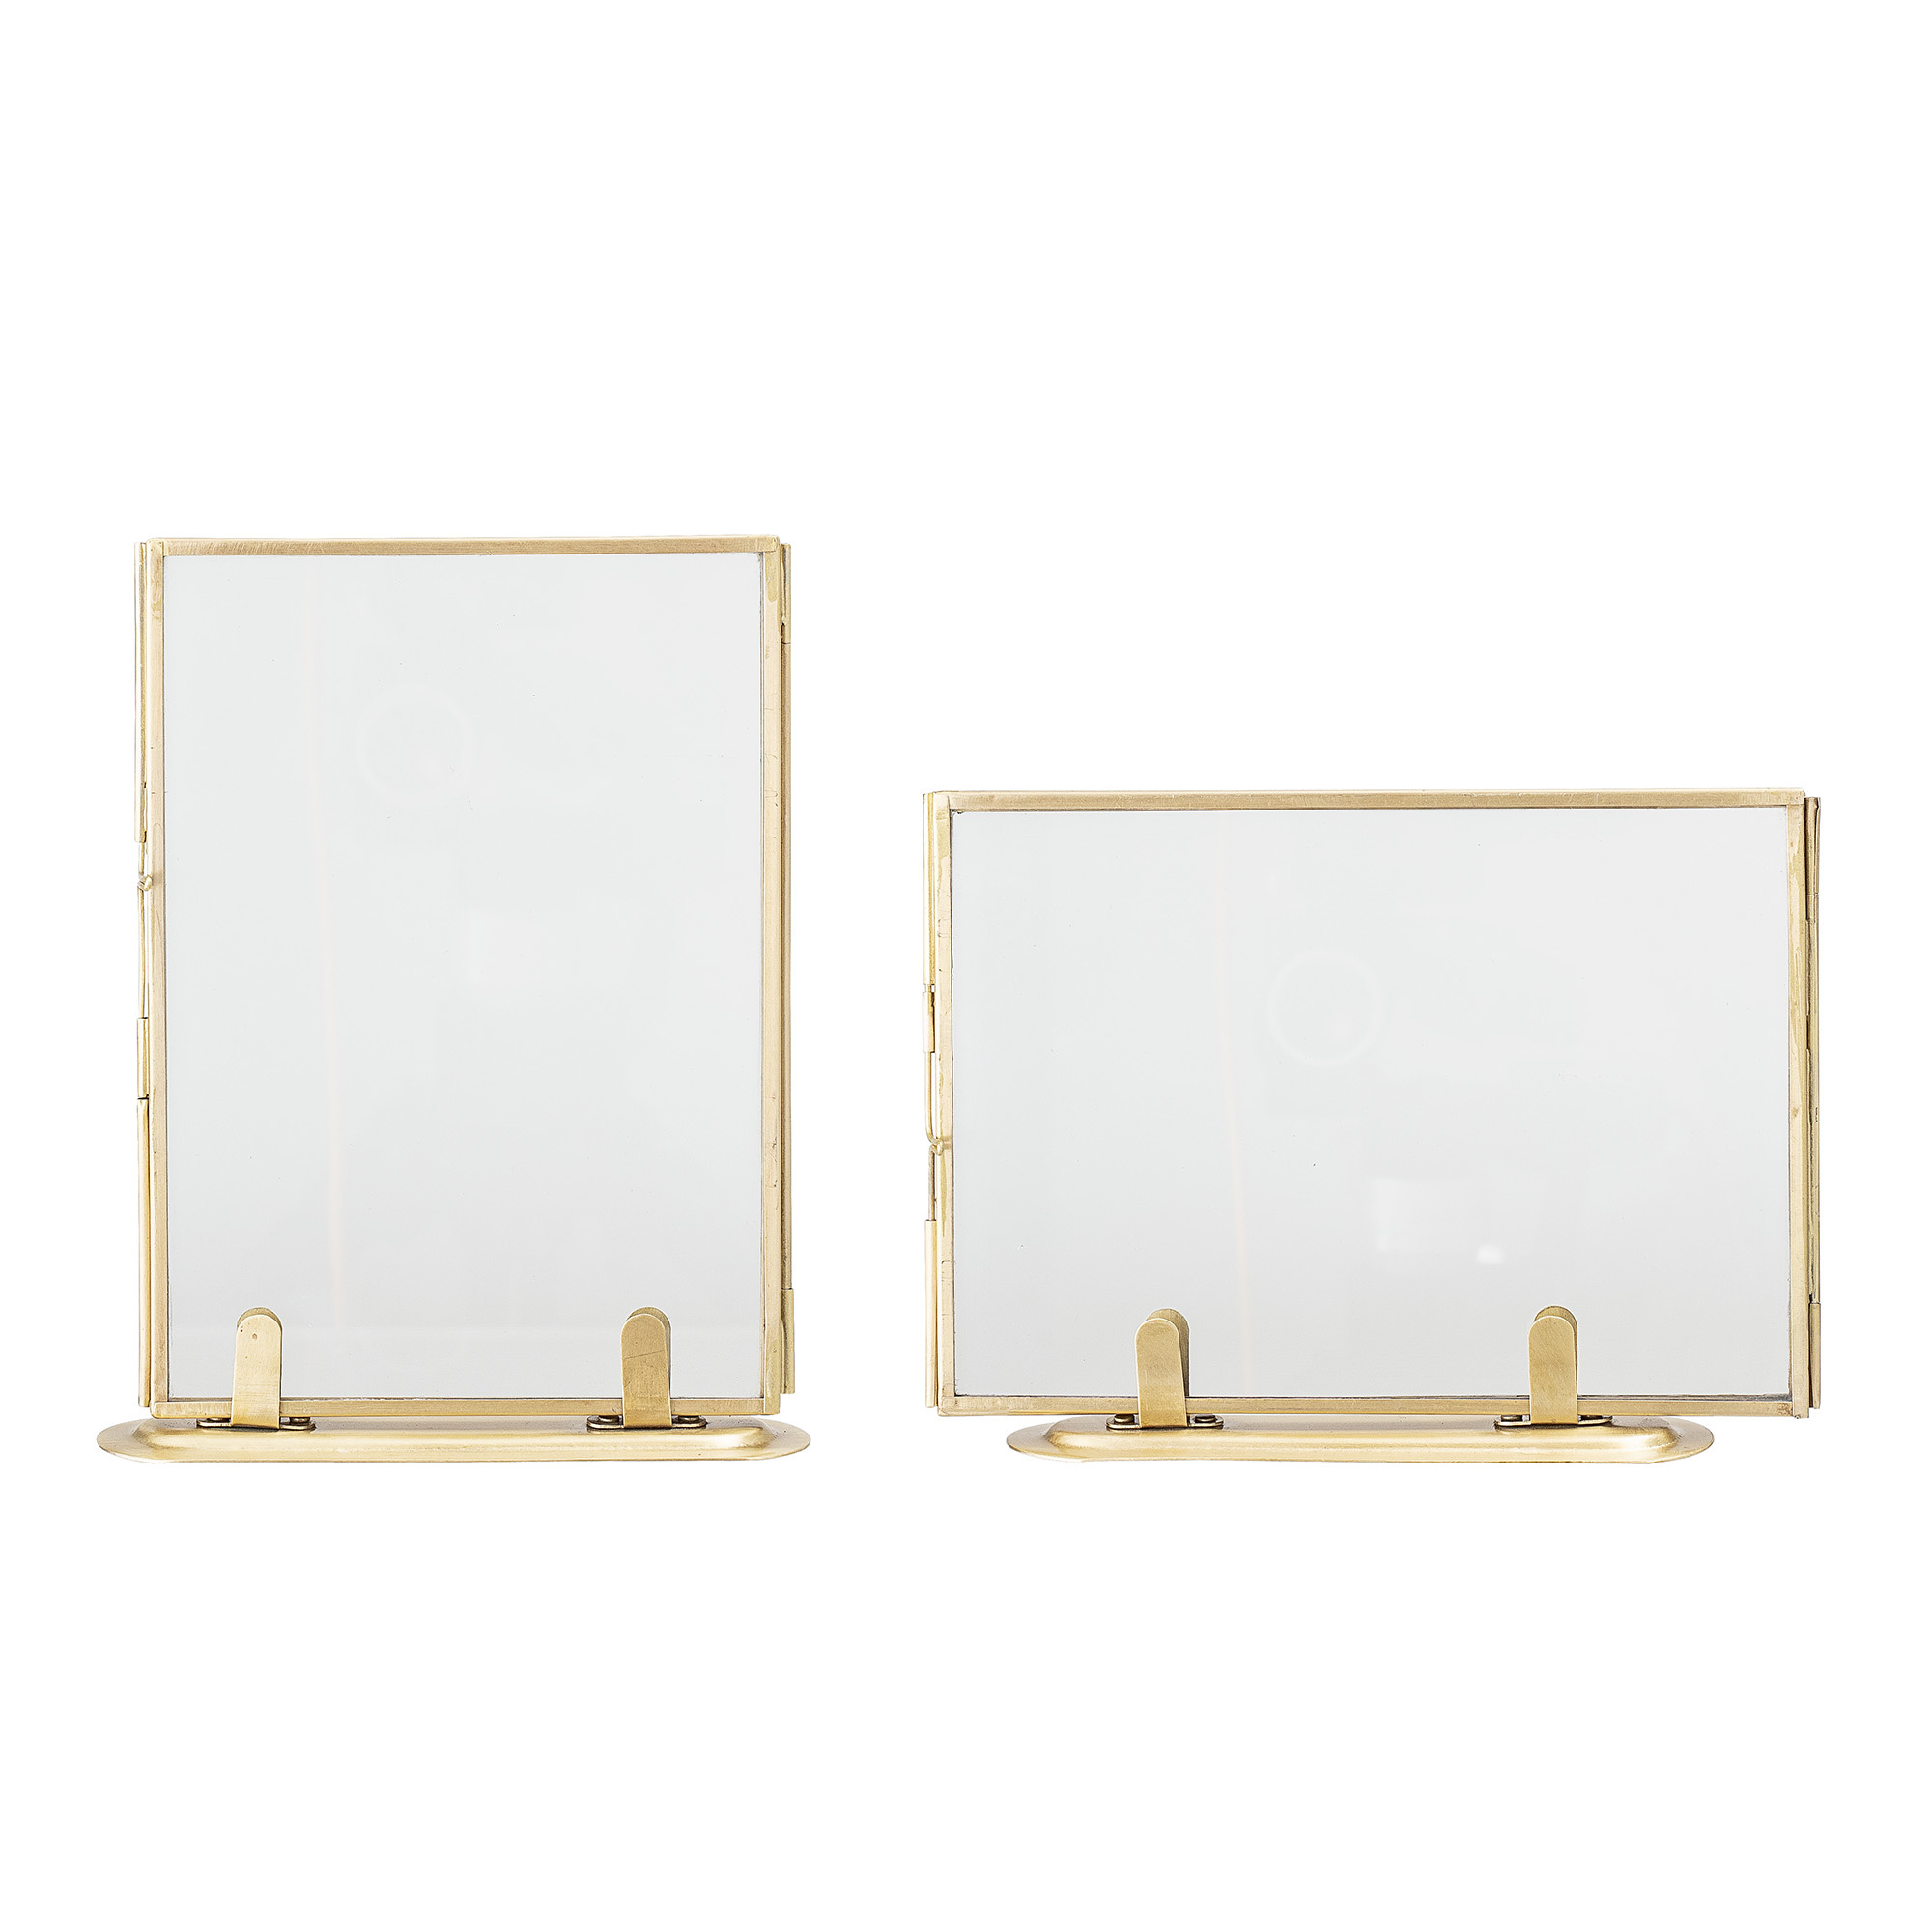 Bloomingville Set of 2 Photo Frames - Brass / Gold - L14xH18 - Bloomingville